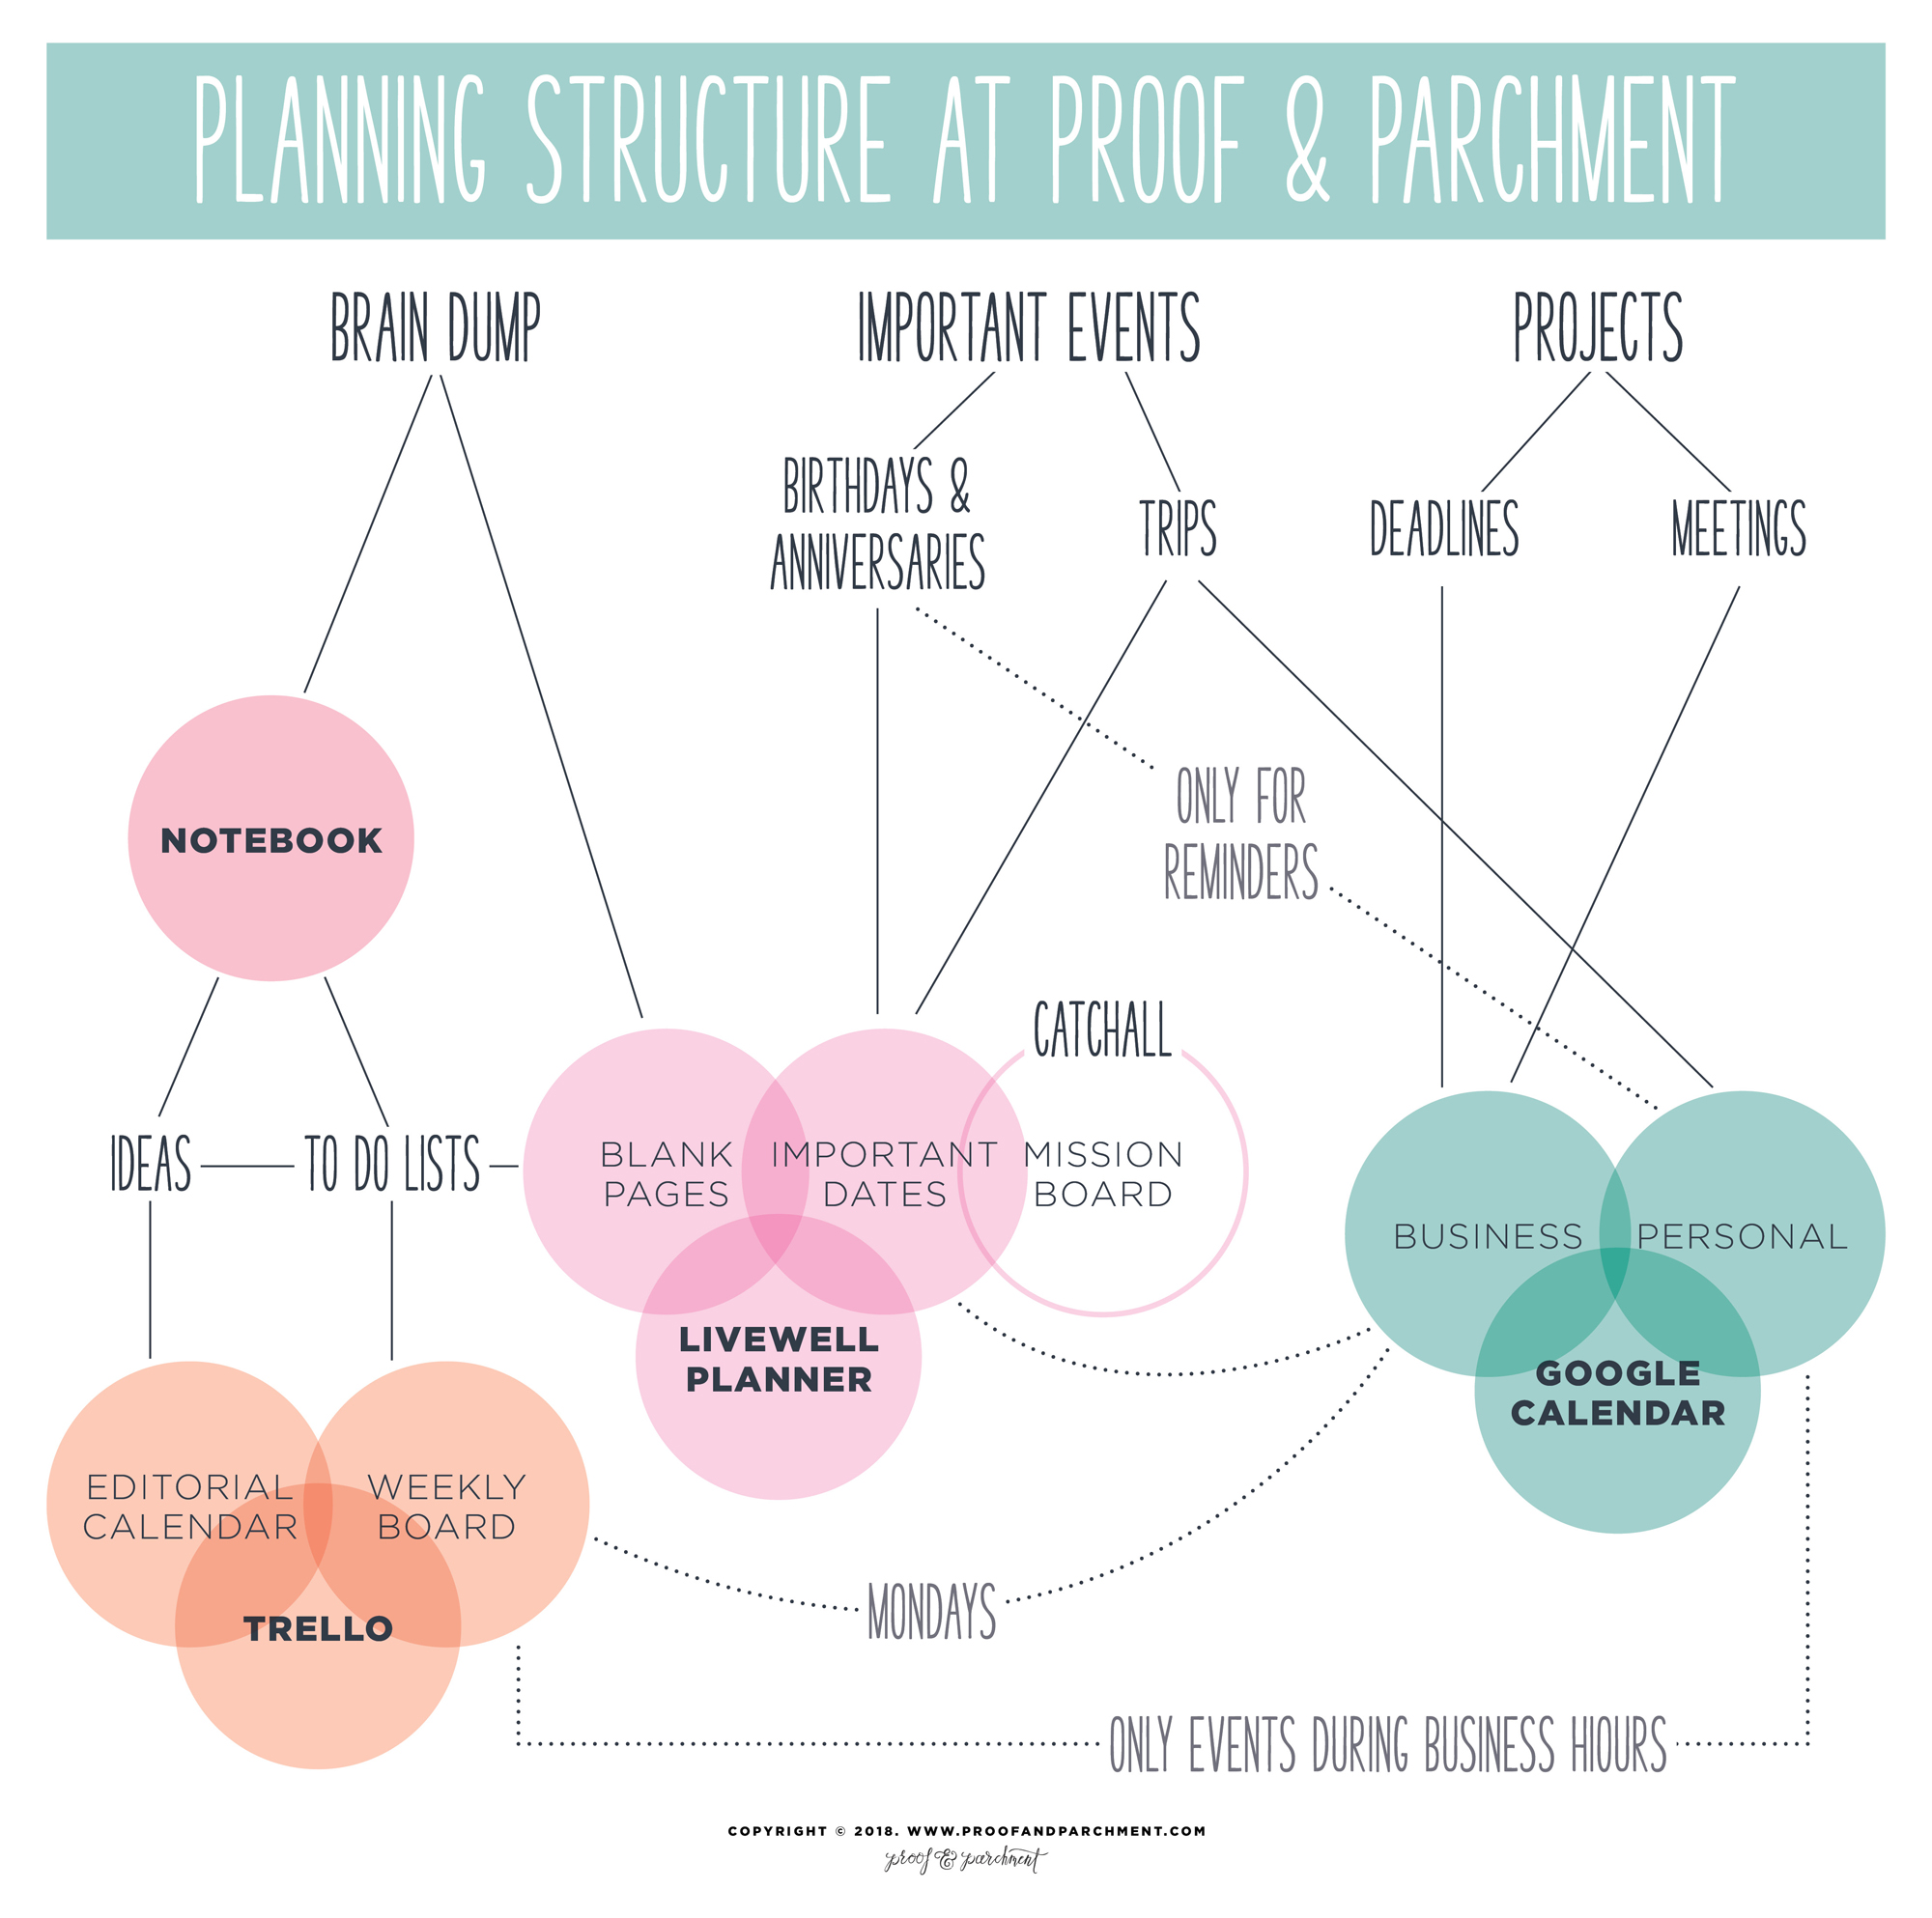 Flow Chart showing the planning structure at Proof & Parchment